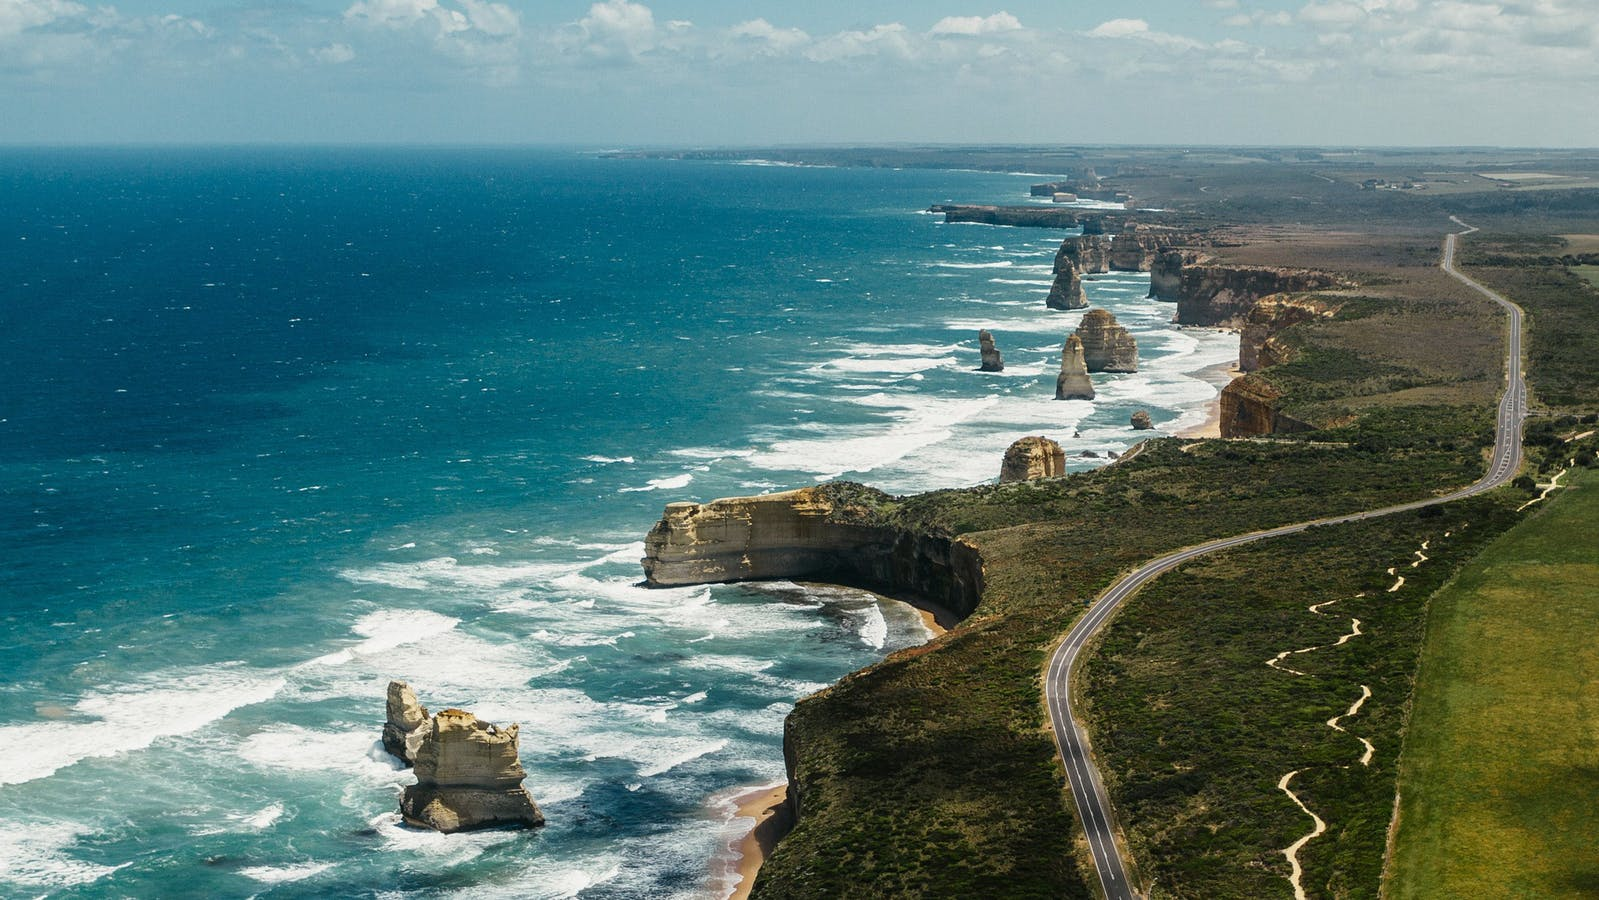 Aerial photograph of the Great Ocean Road & 12 Apostles